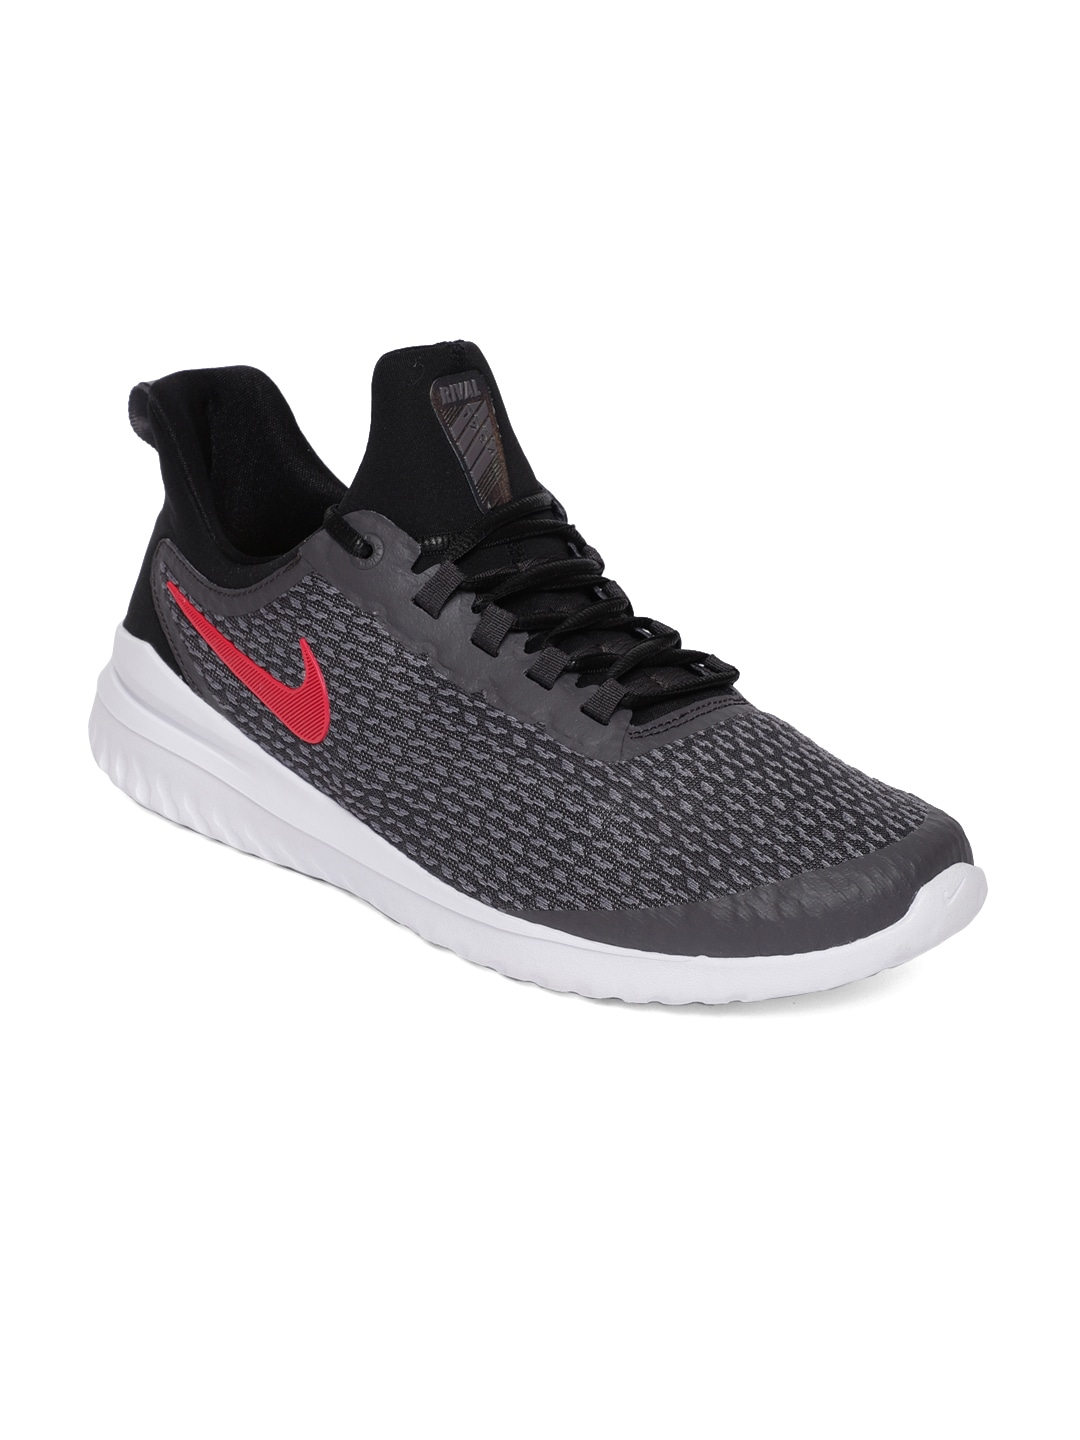 Grey Renew Rival Running Shoes